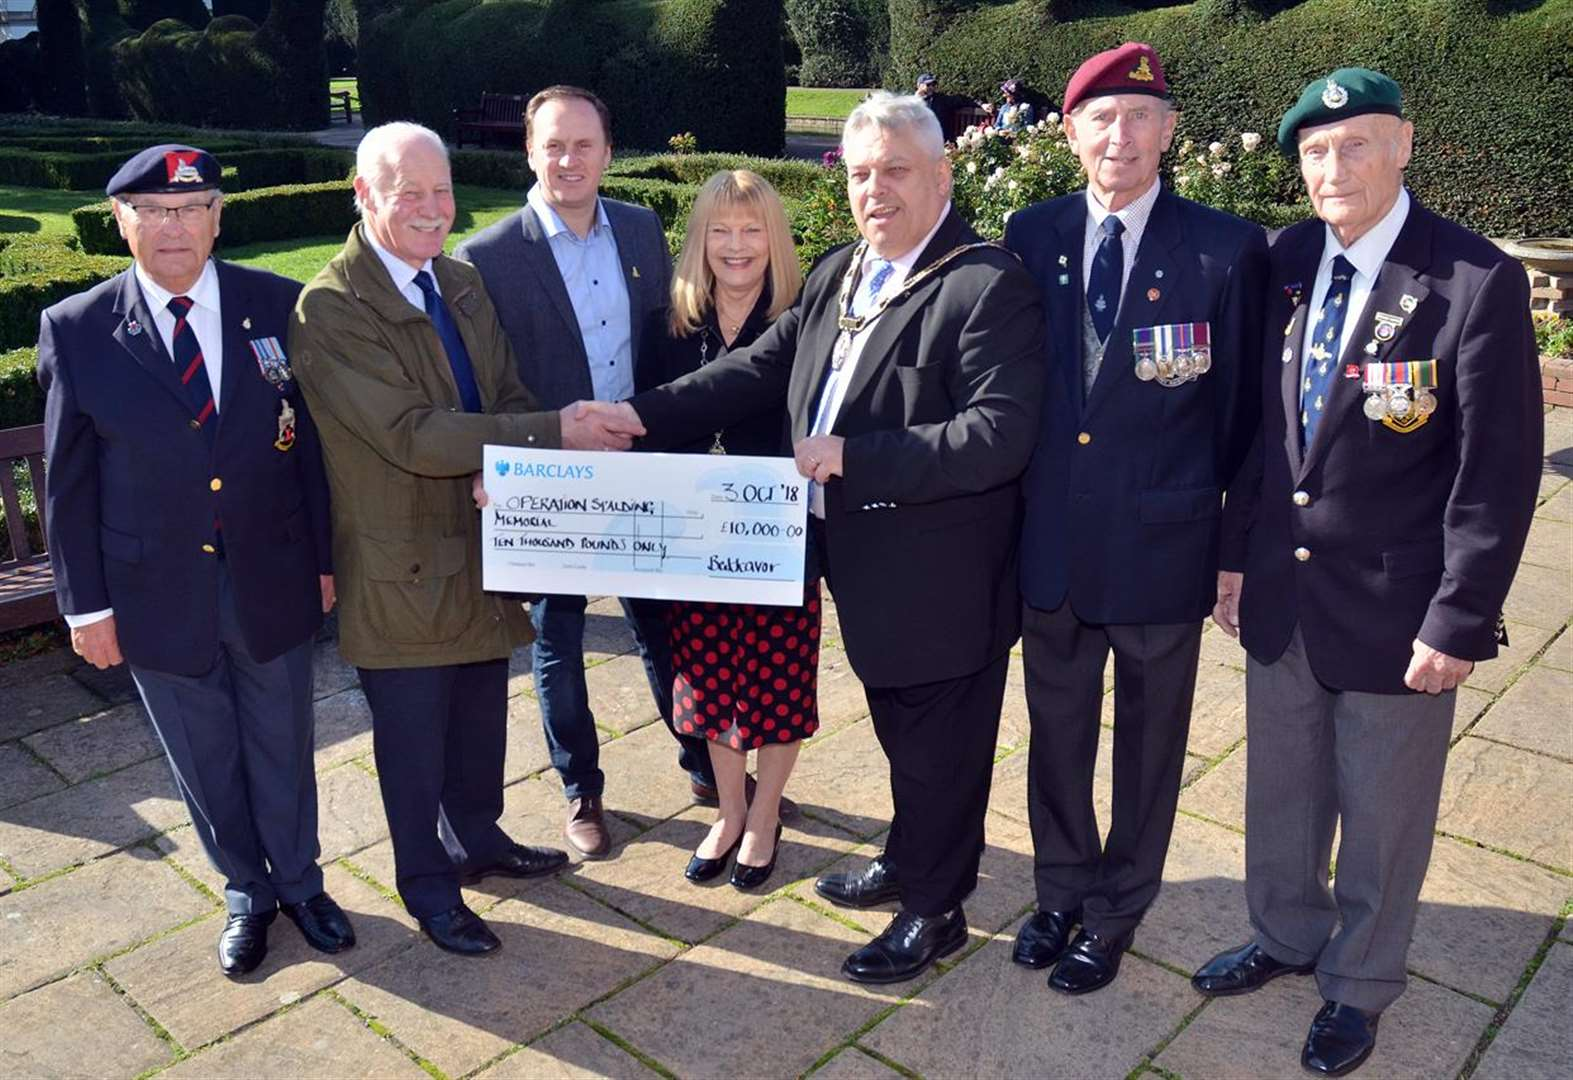 Final push to collect the last £5,000 for Spalding's WWII Memorial